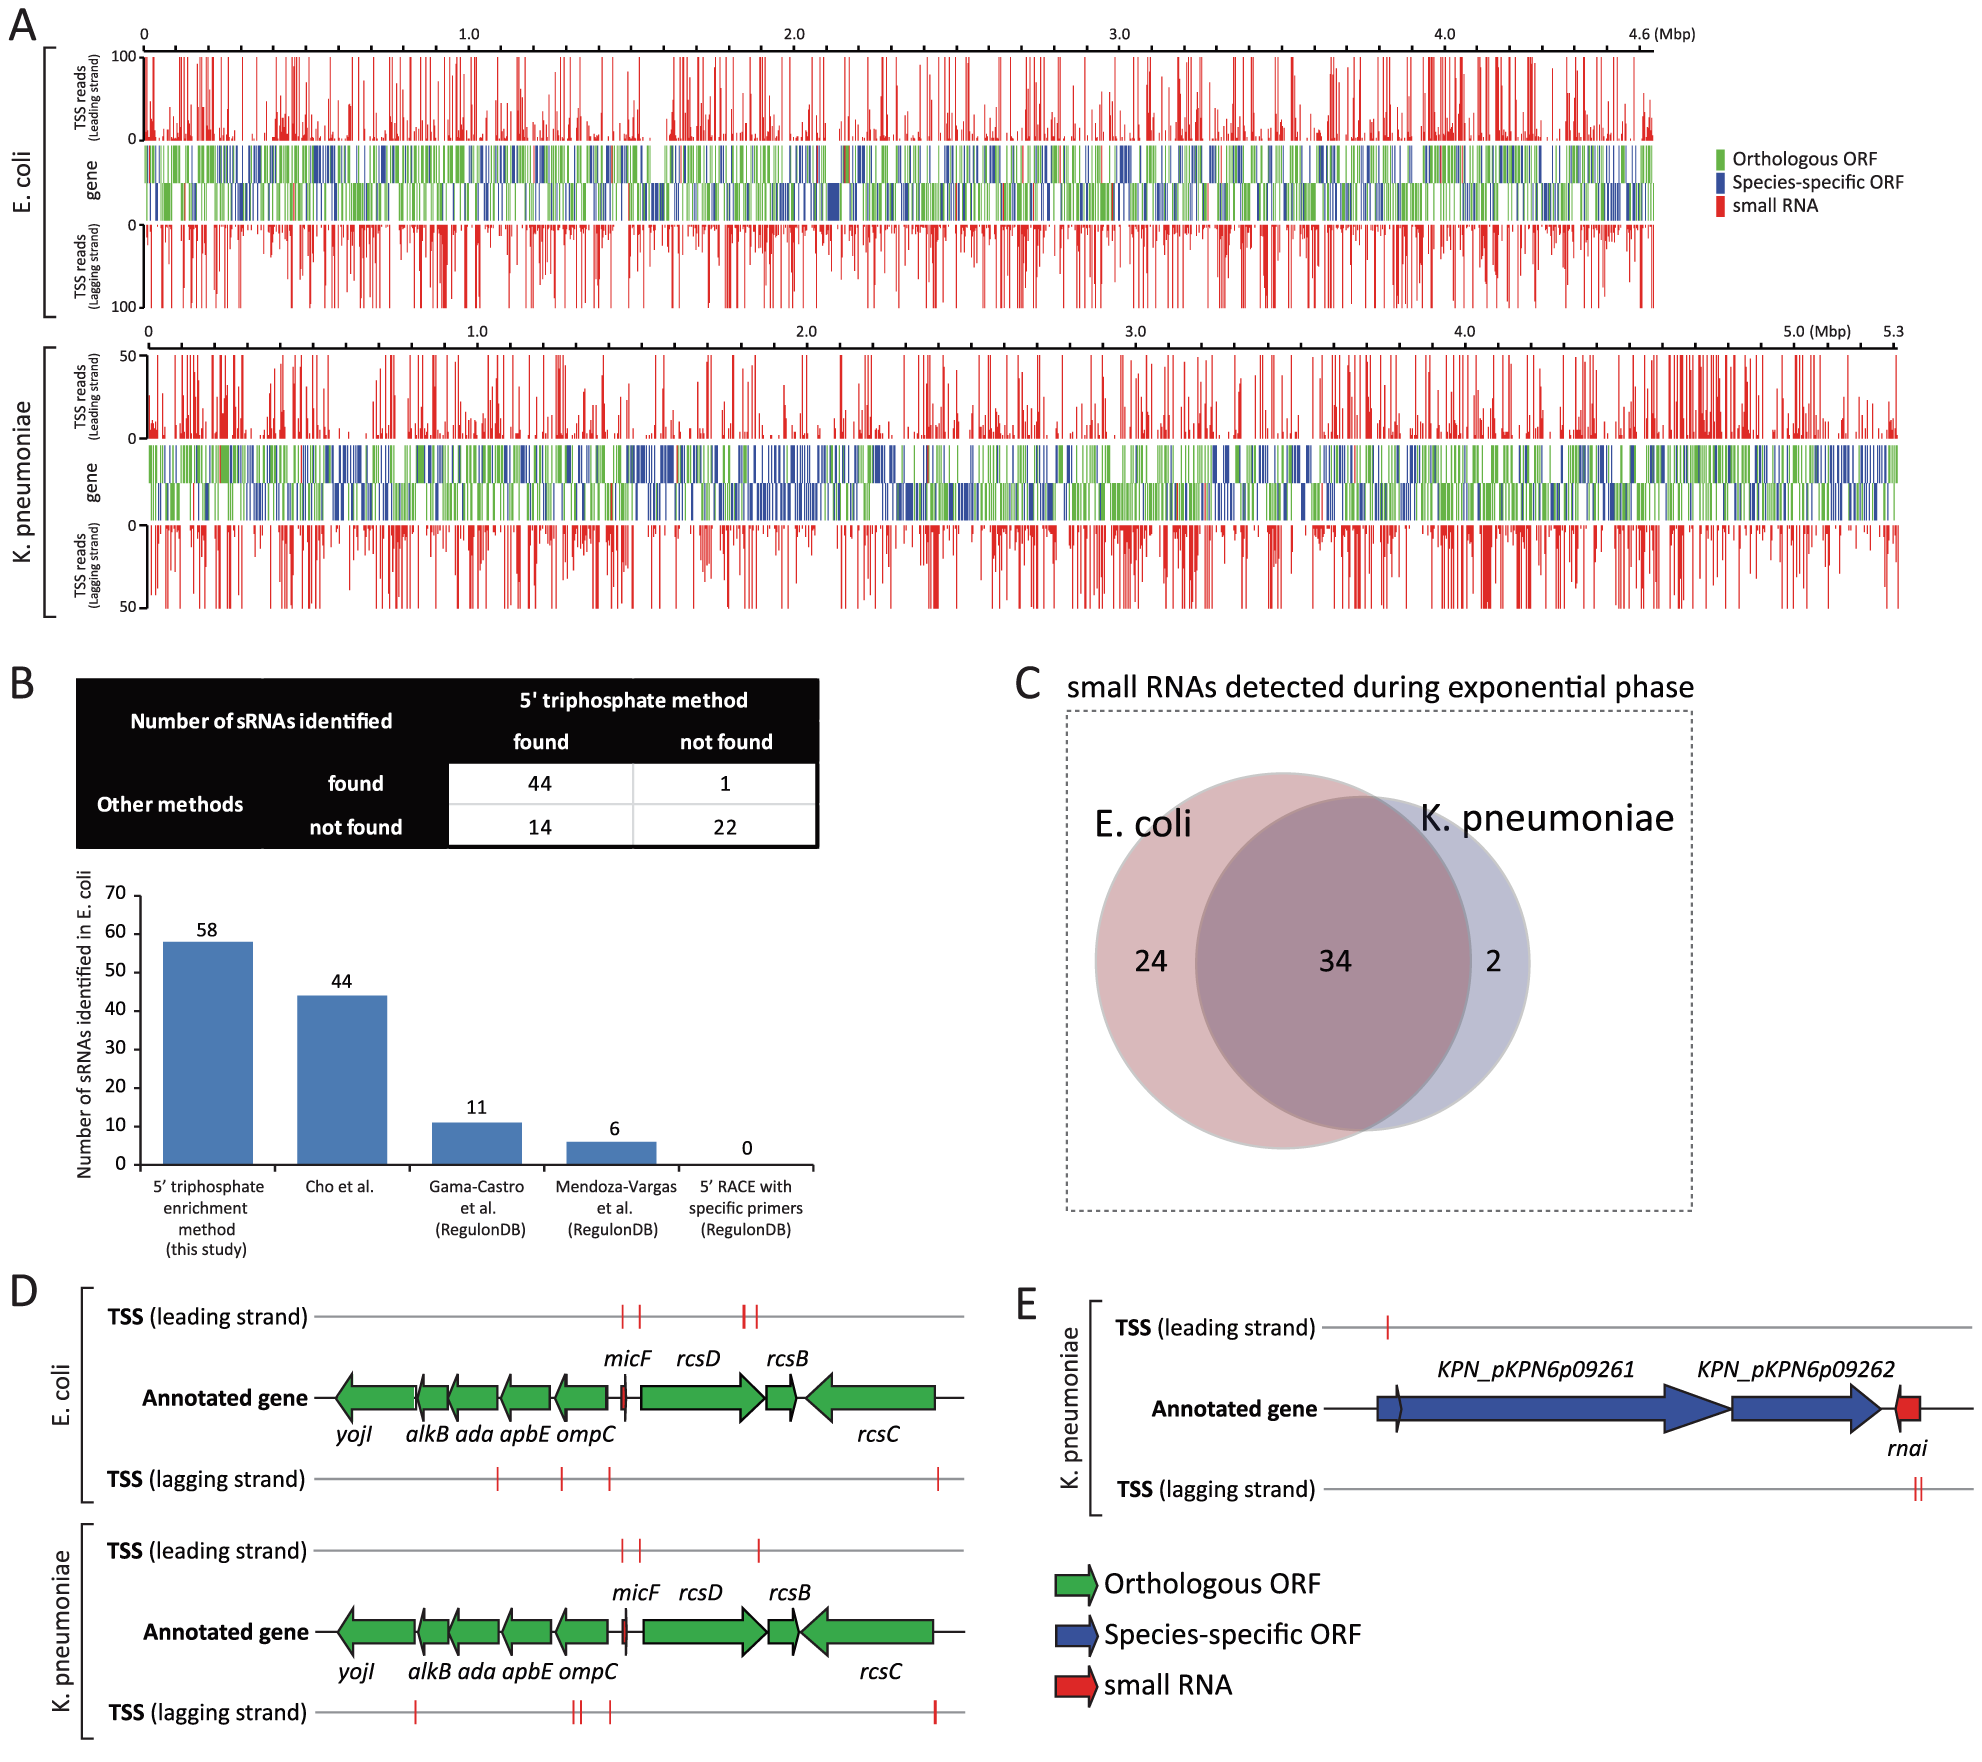 Experimentally determined TSSs and their association with annotated genes.